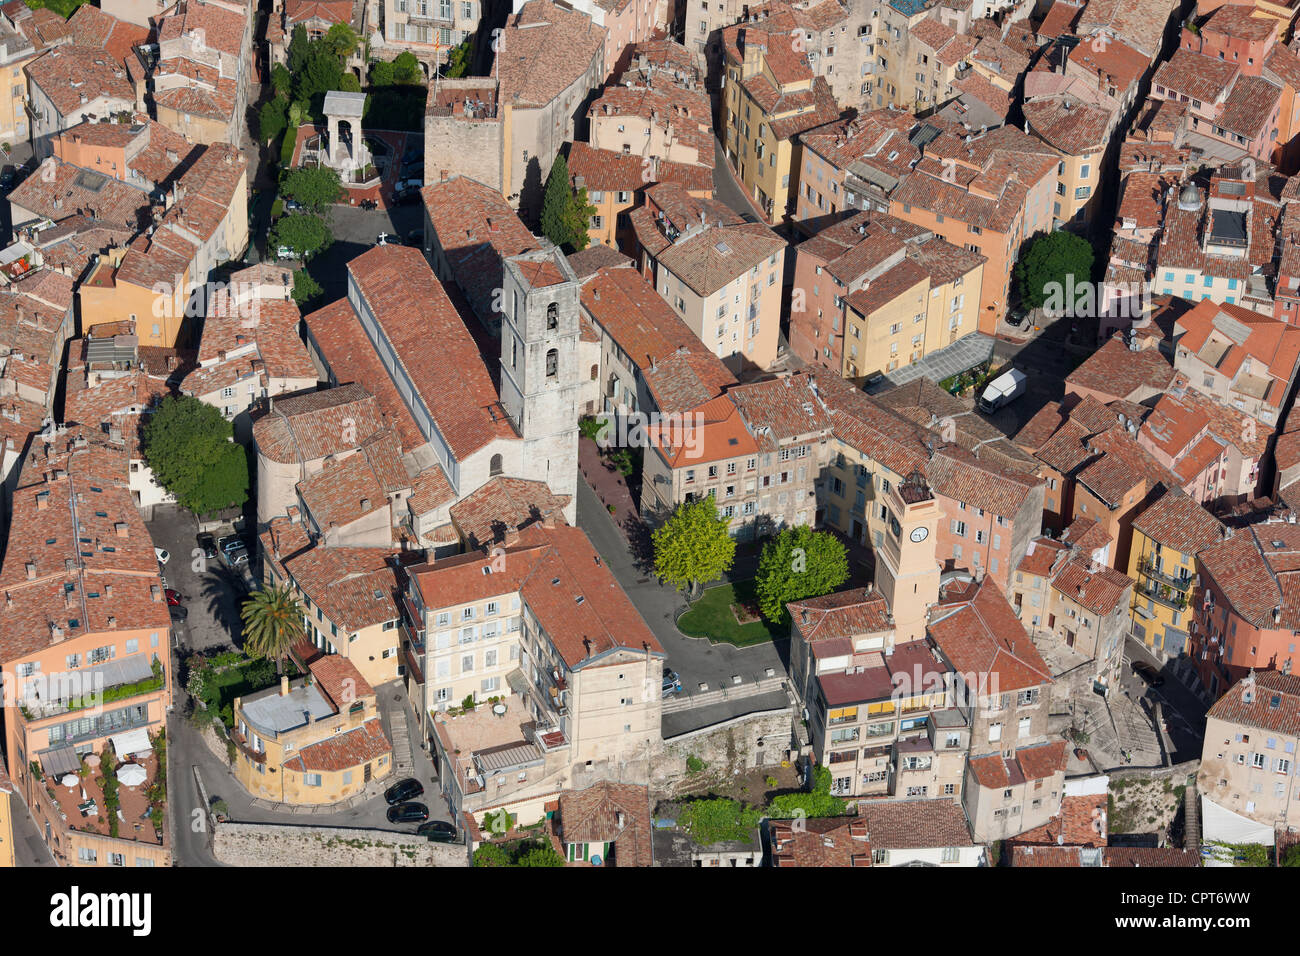 CATHEDRAL OF NOTRE-DAME DU PUY DE GRASSE (aerial view). City of Grasse, French Riviera's backcountry, France. - Stock Image